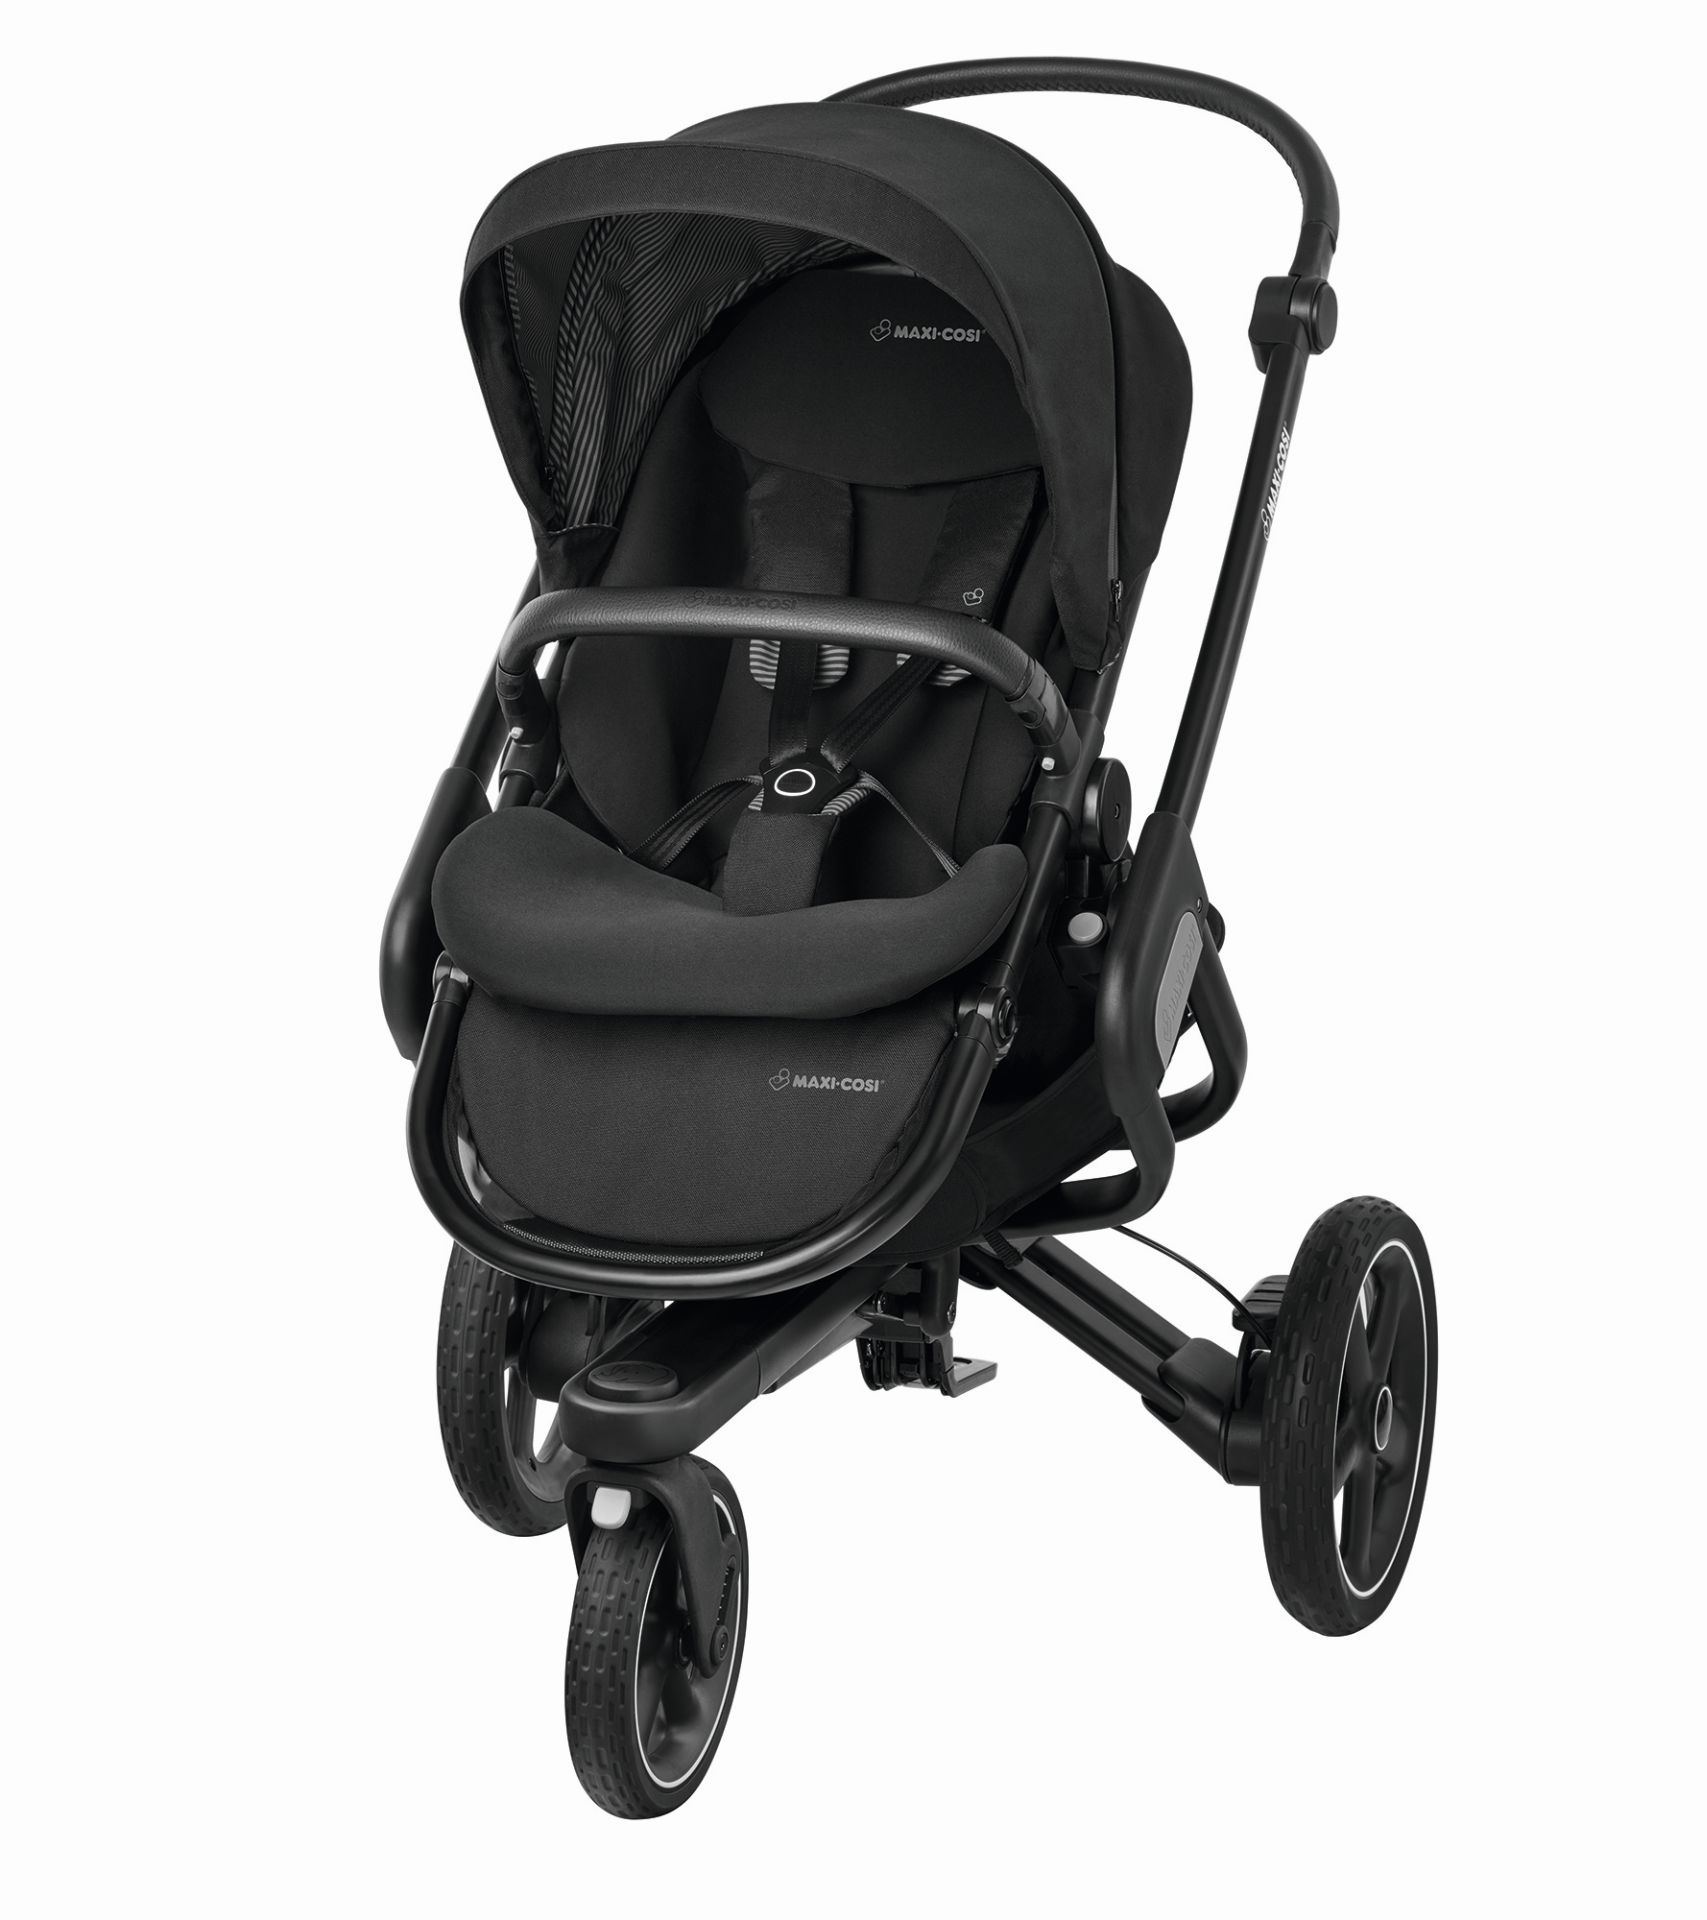 maxi cosi 3 wheels stroller nova 2017 black raven buy at. Black Bedroom Furniture Sets. Home Design Ideas